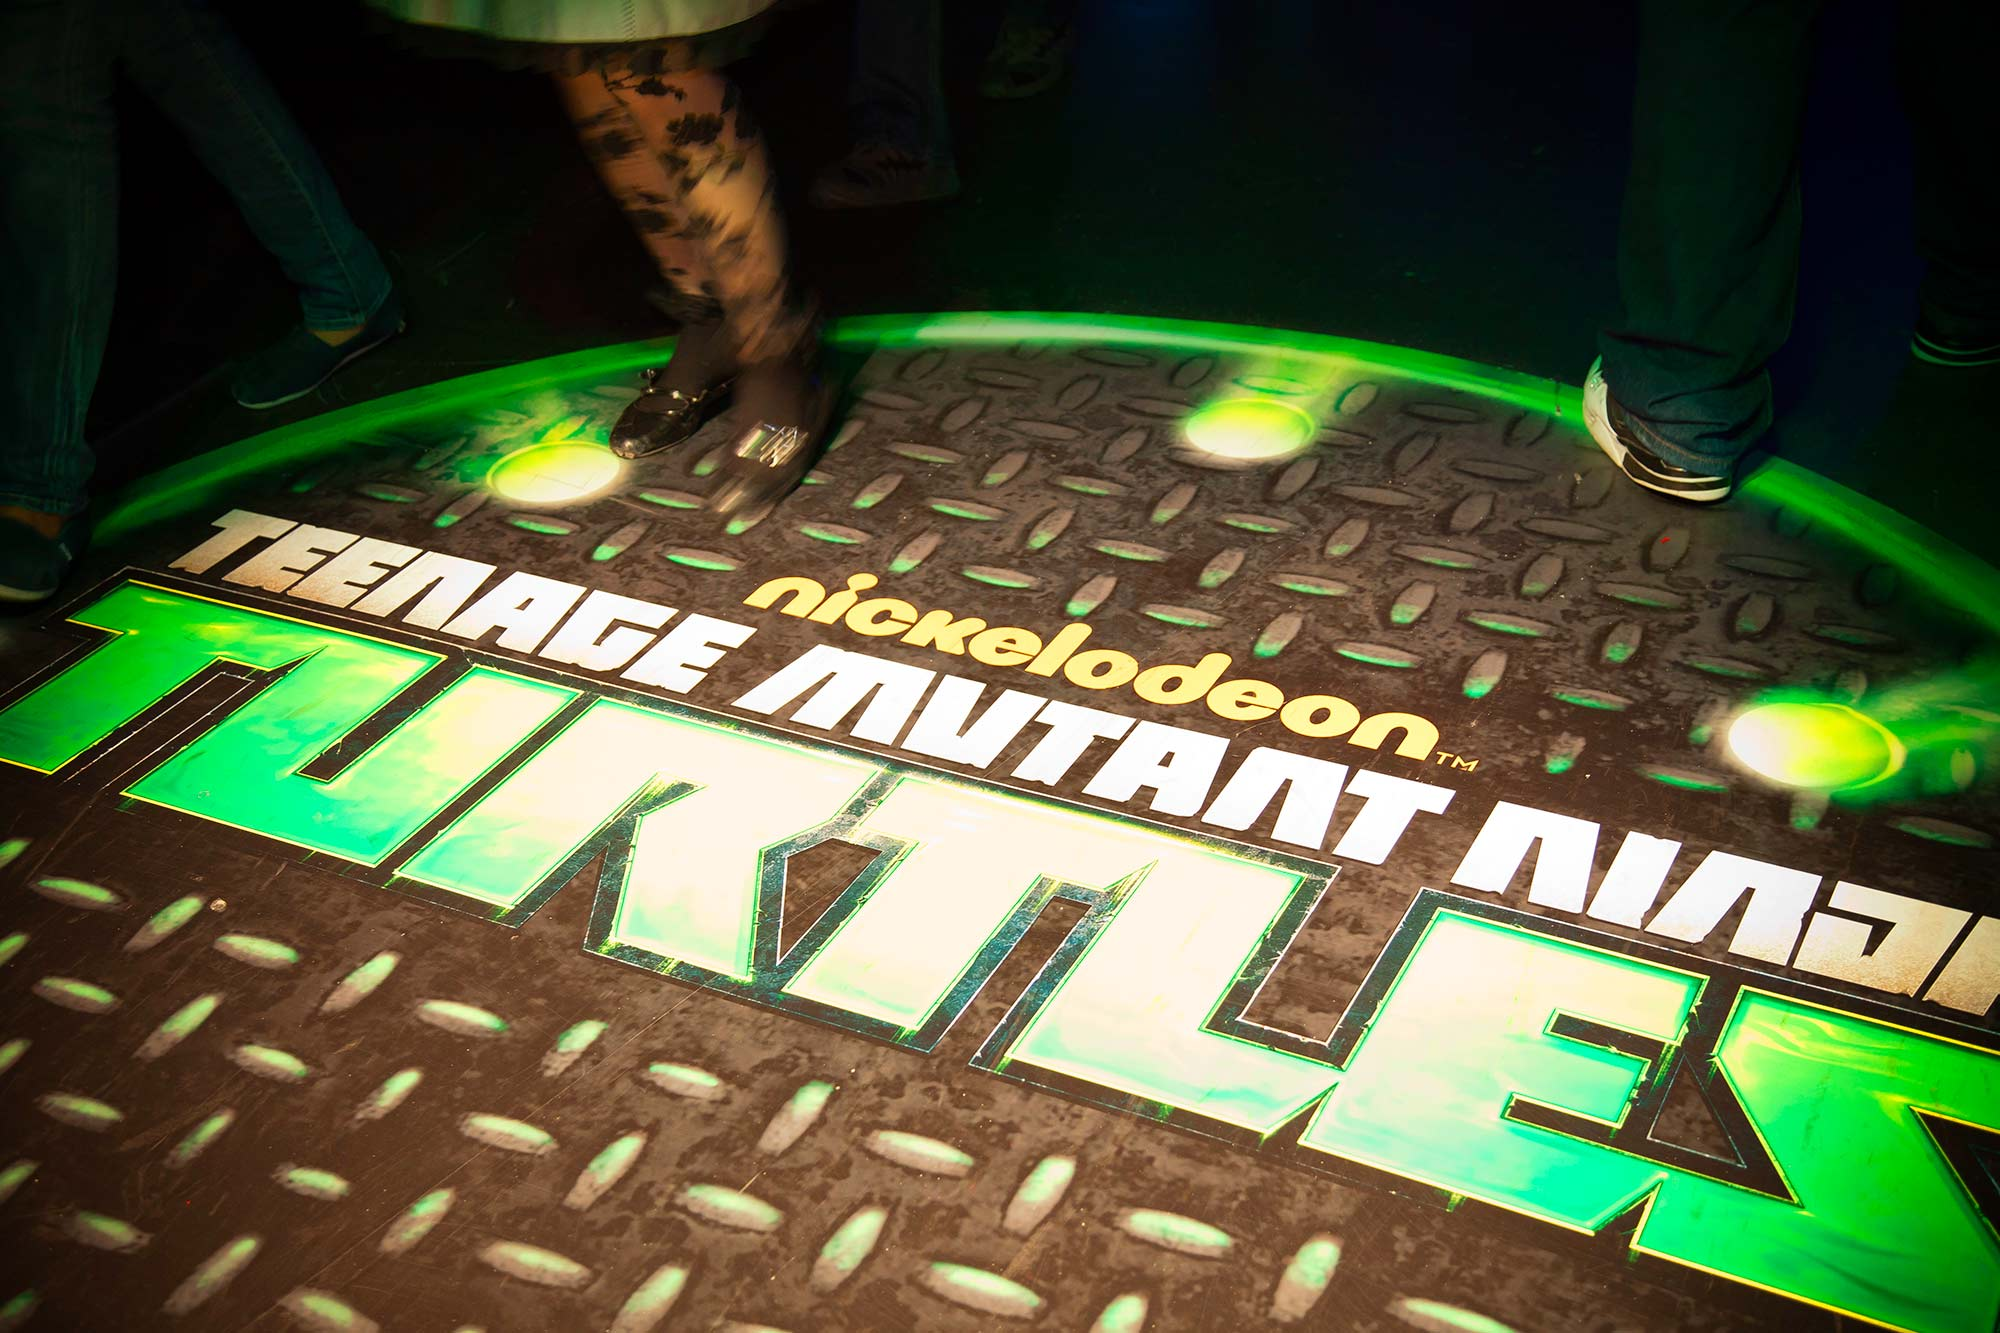 Branded manhole covers greeted guests as they stepped into the immersive experience of Nickelodeon's Teenage Mutant Ninja Turtle hallway.